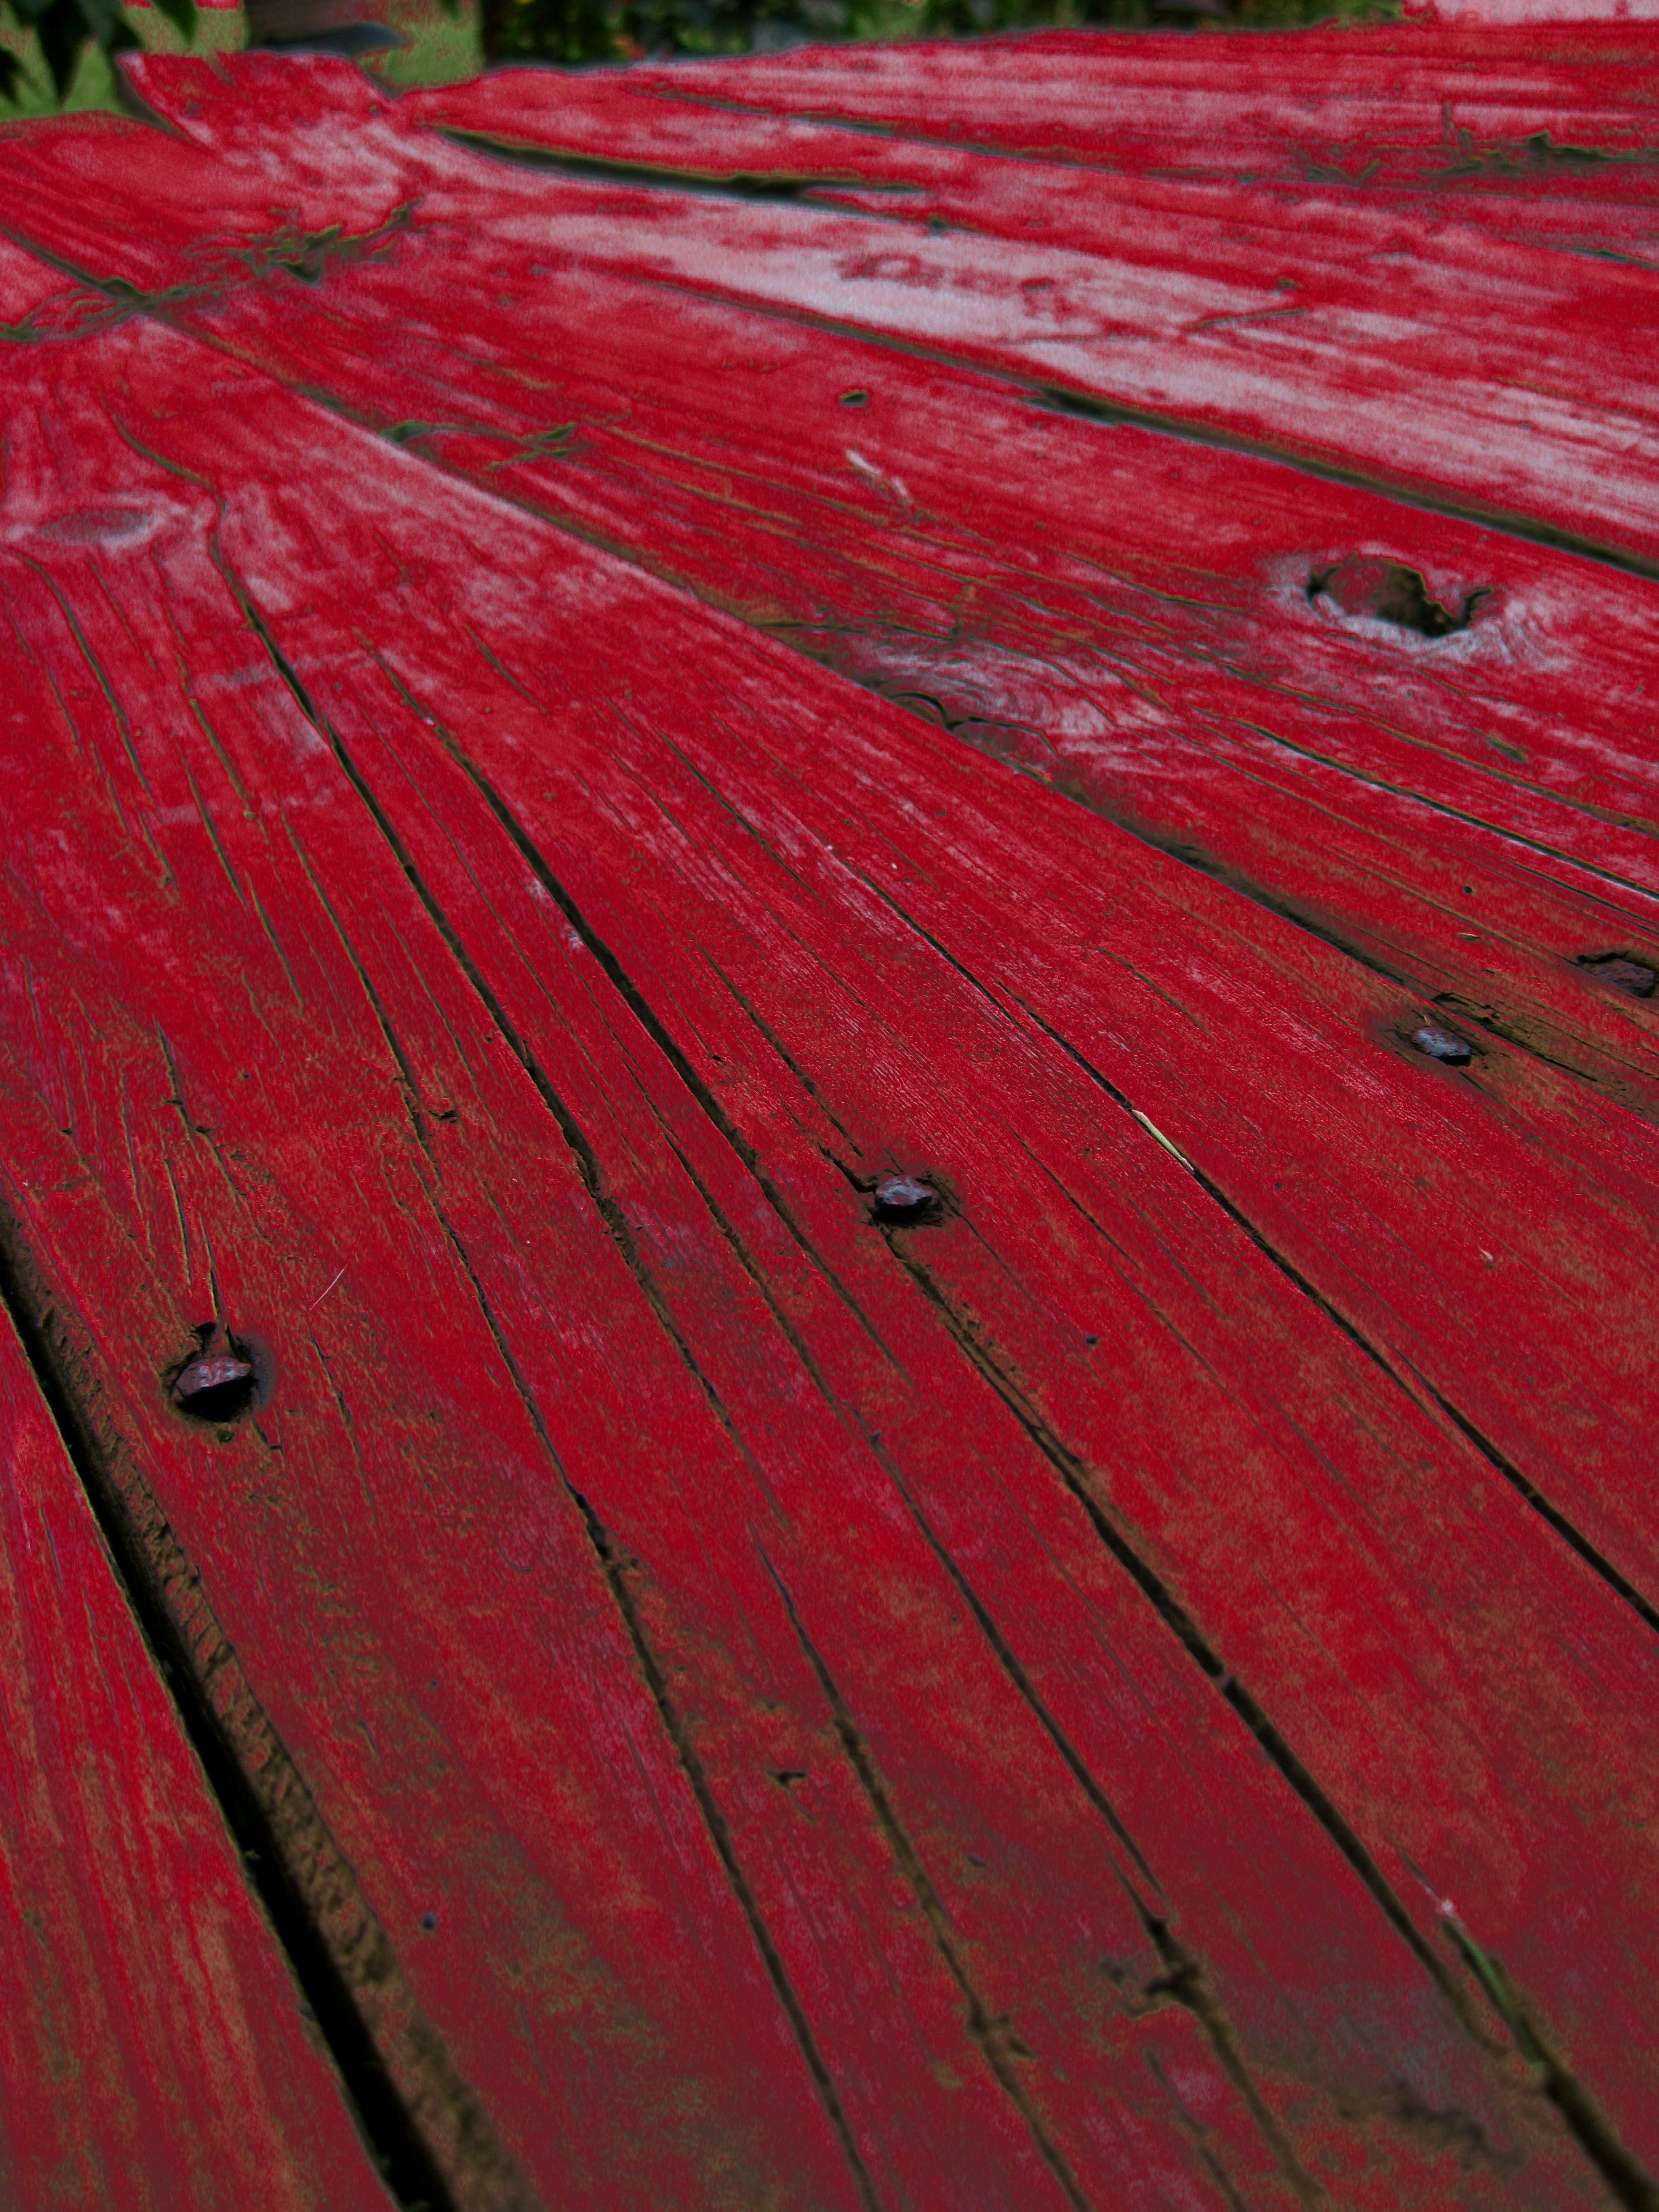 Redwood Red Paint Shades Of Red Red Aesthetic